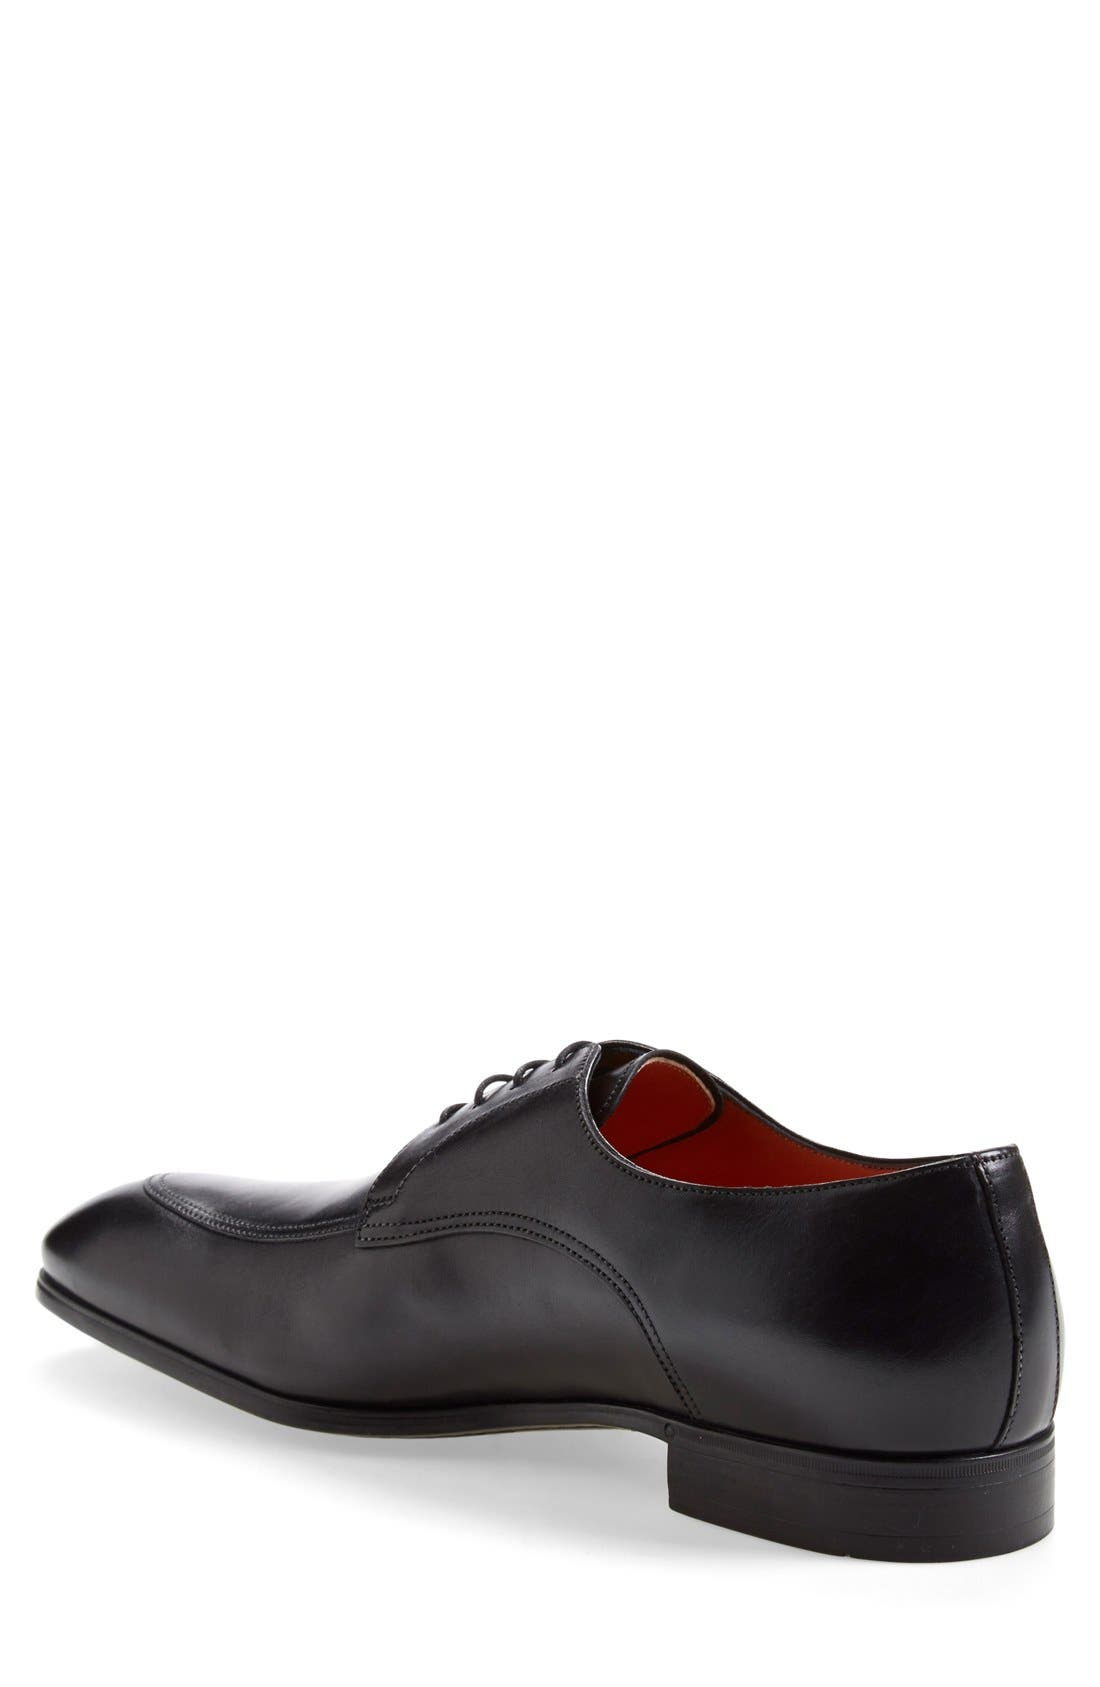 'Atwood' Apron Toe Derby,                             Alternate thumbnail 3, color,                             Black Leather